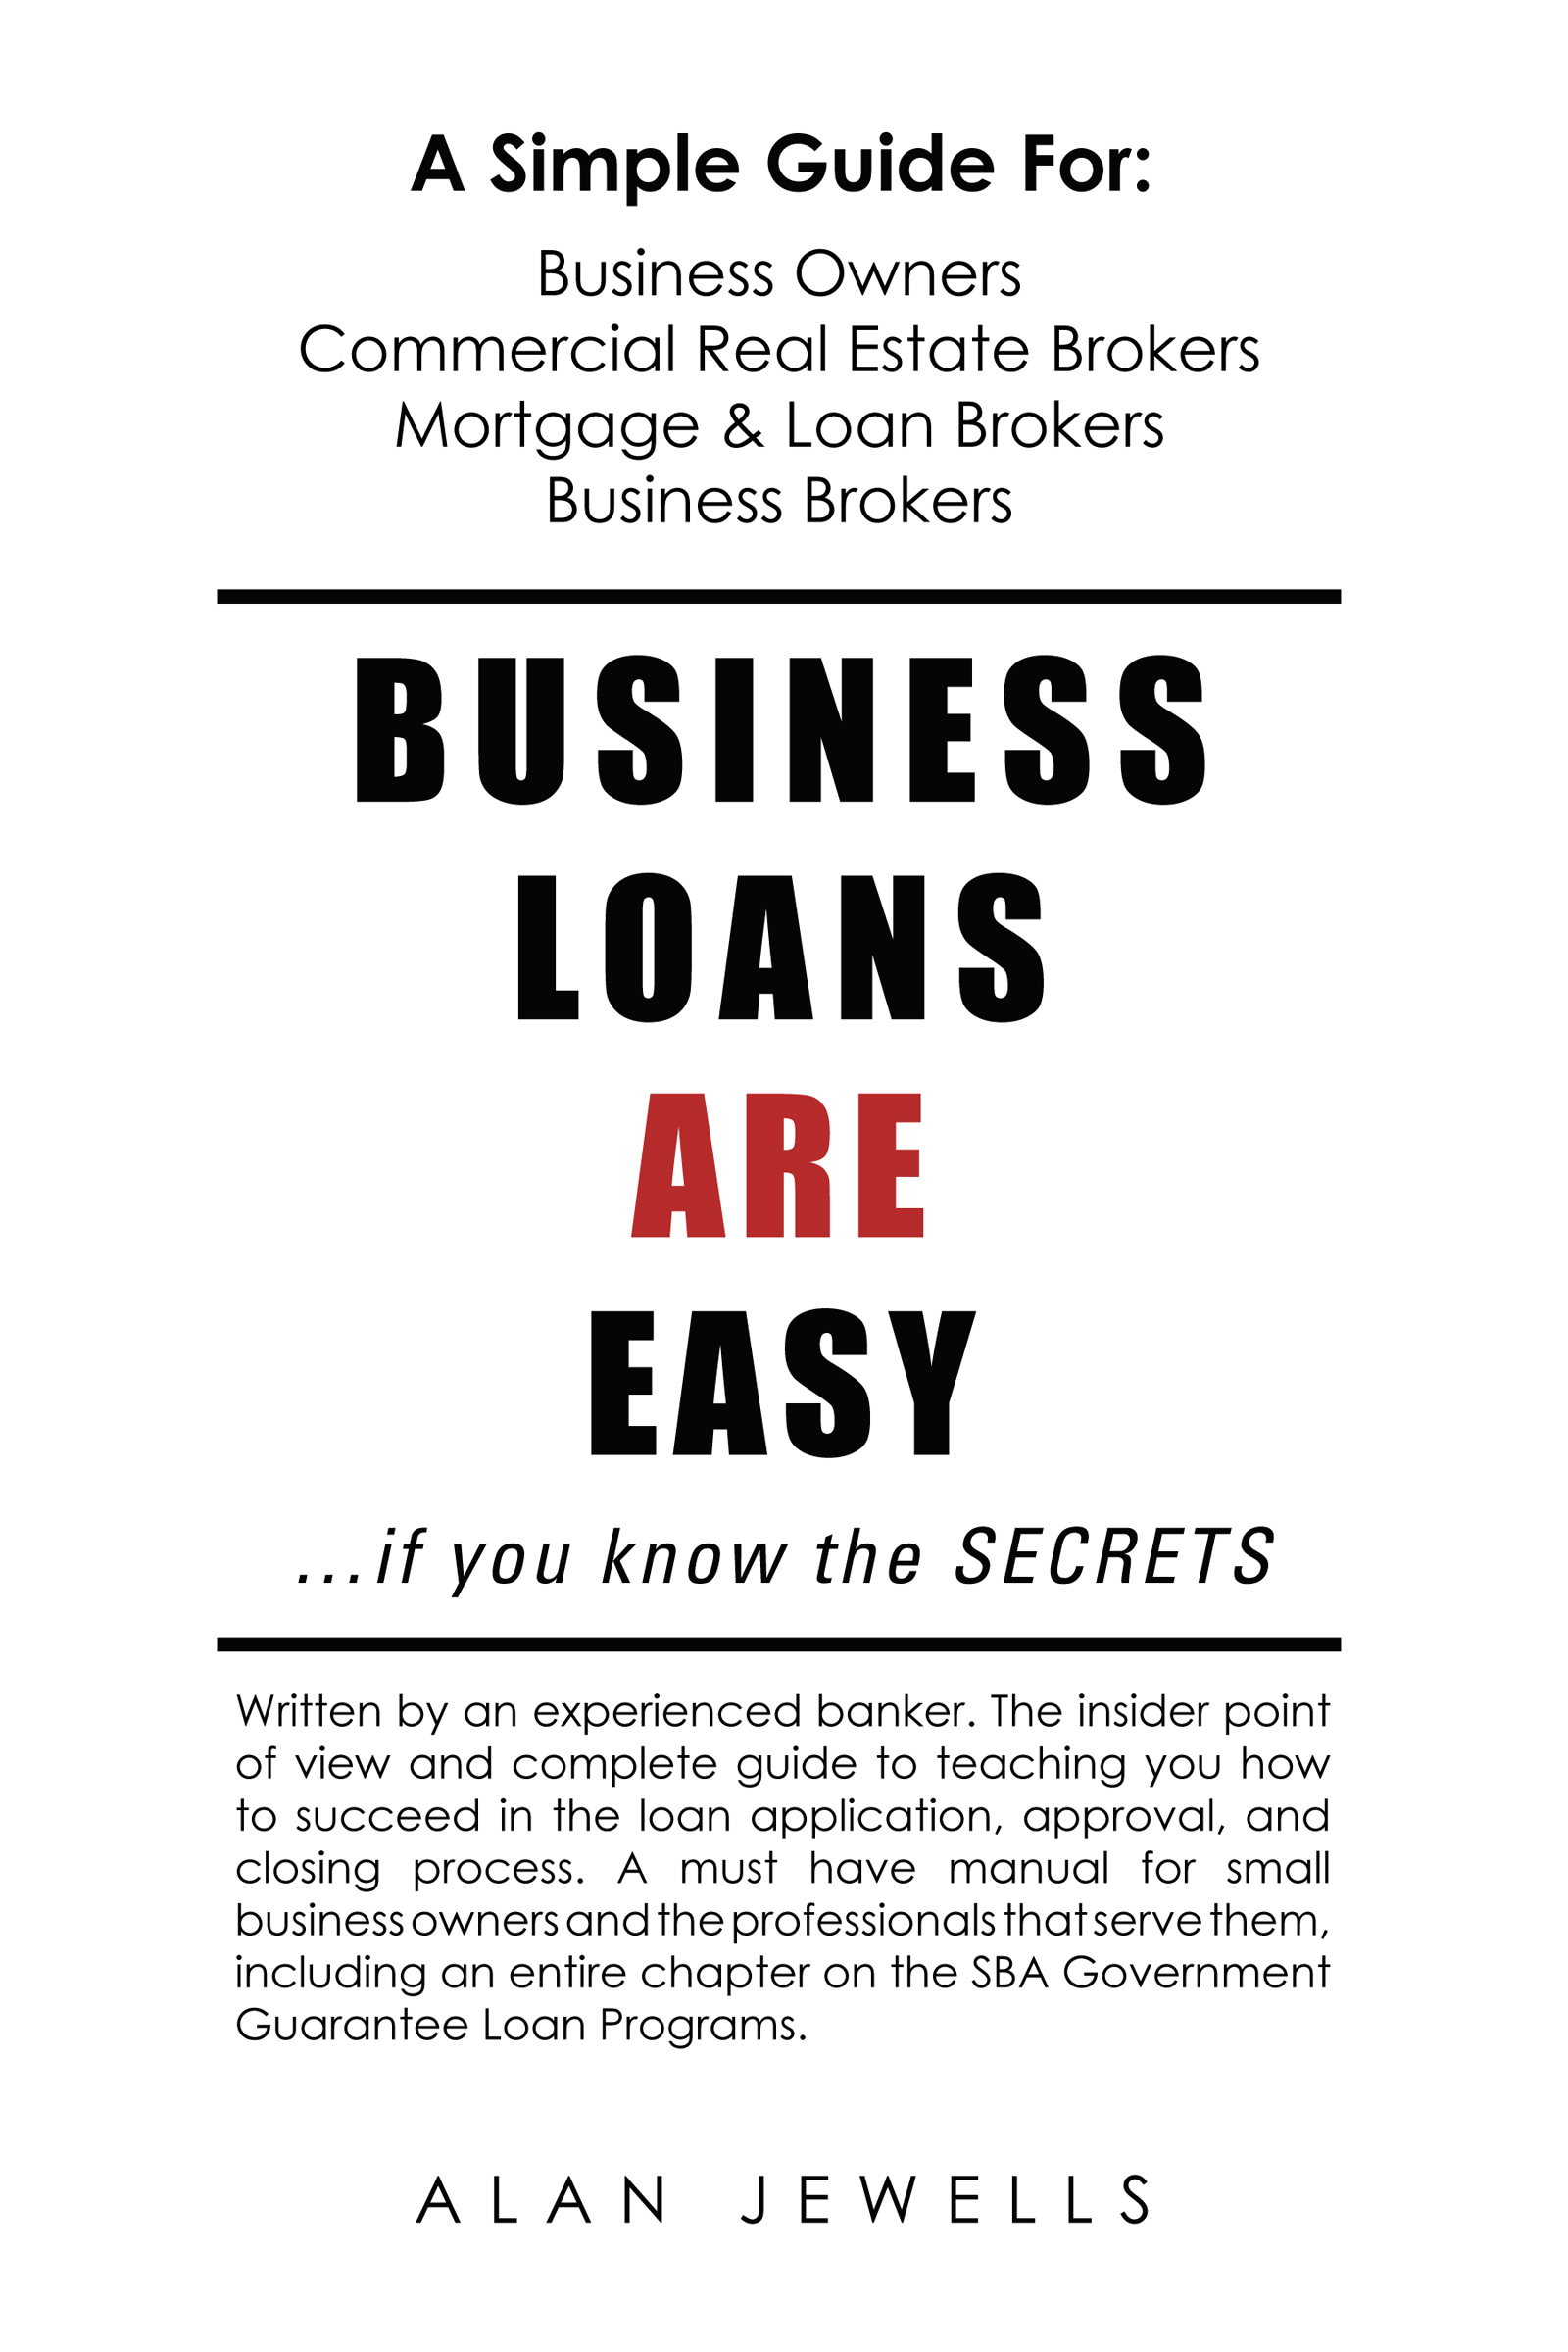 Business Loans Are Easy. . .if you know the SECRETS